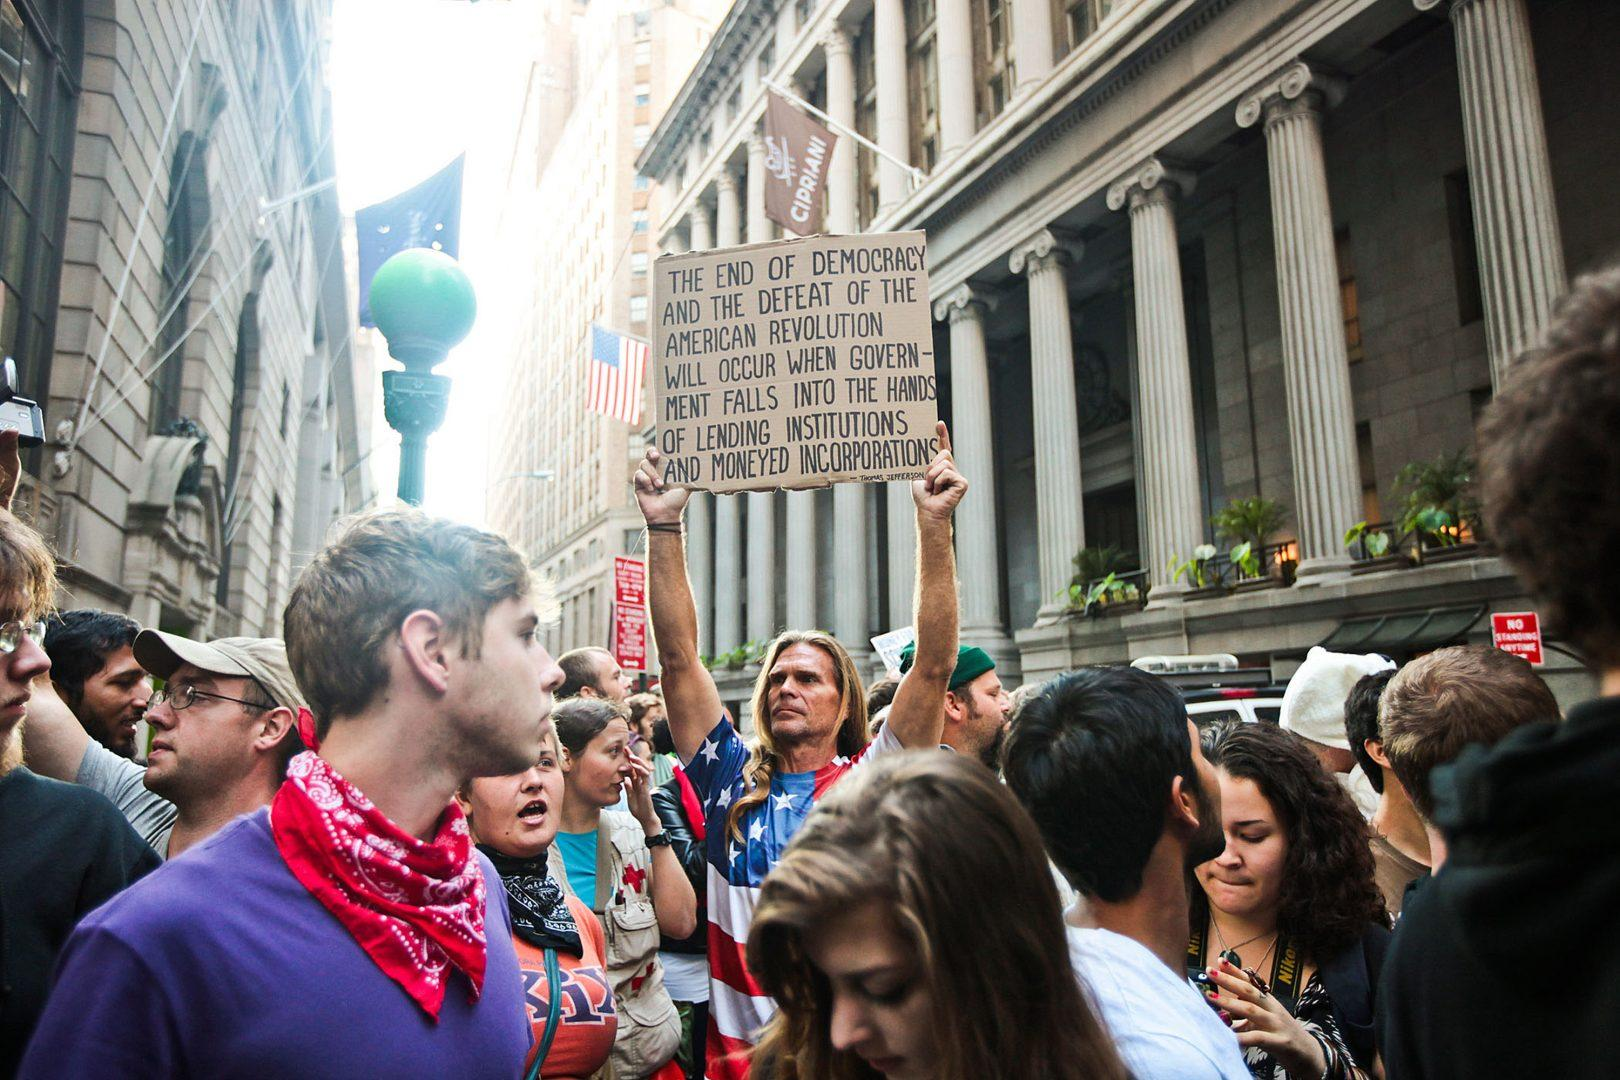 Protesters take to the streets of Lower Manhattan to celebrate the first Anniversary of the Occupy Wall Street movement in Manhattan on September 17, 2012. (Courtesy Byron Smith/Zuma Press via MCT)